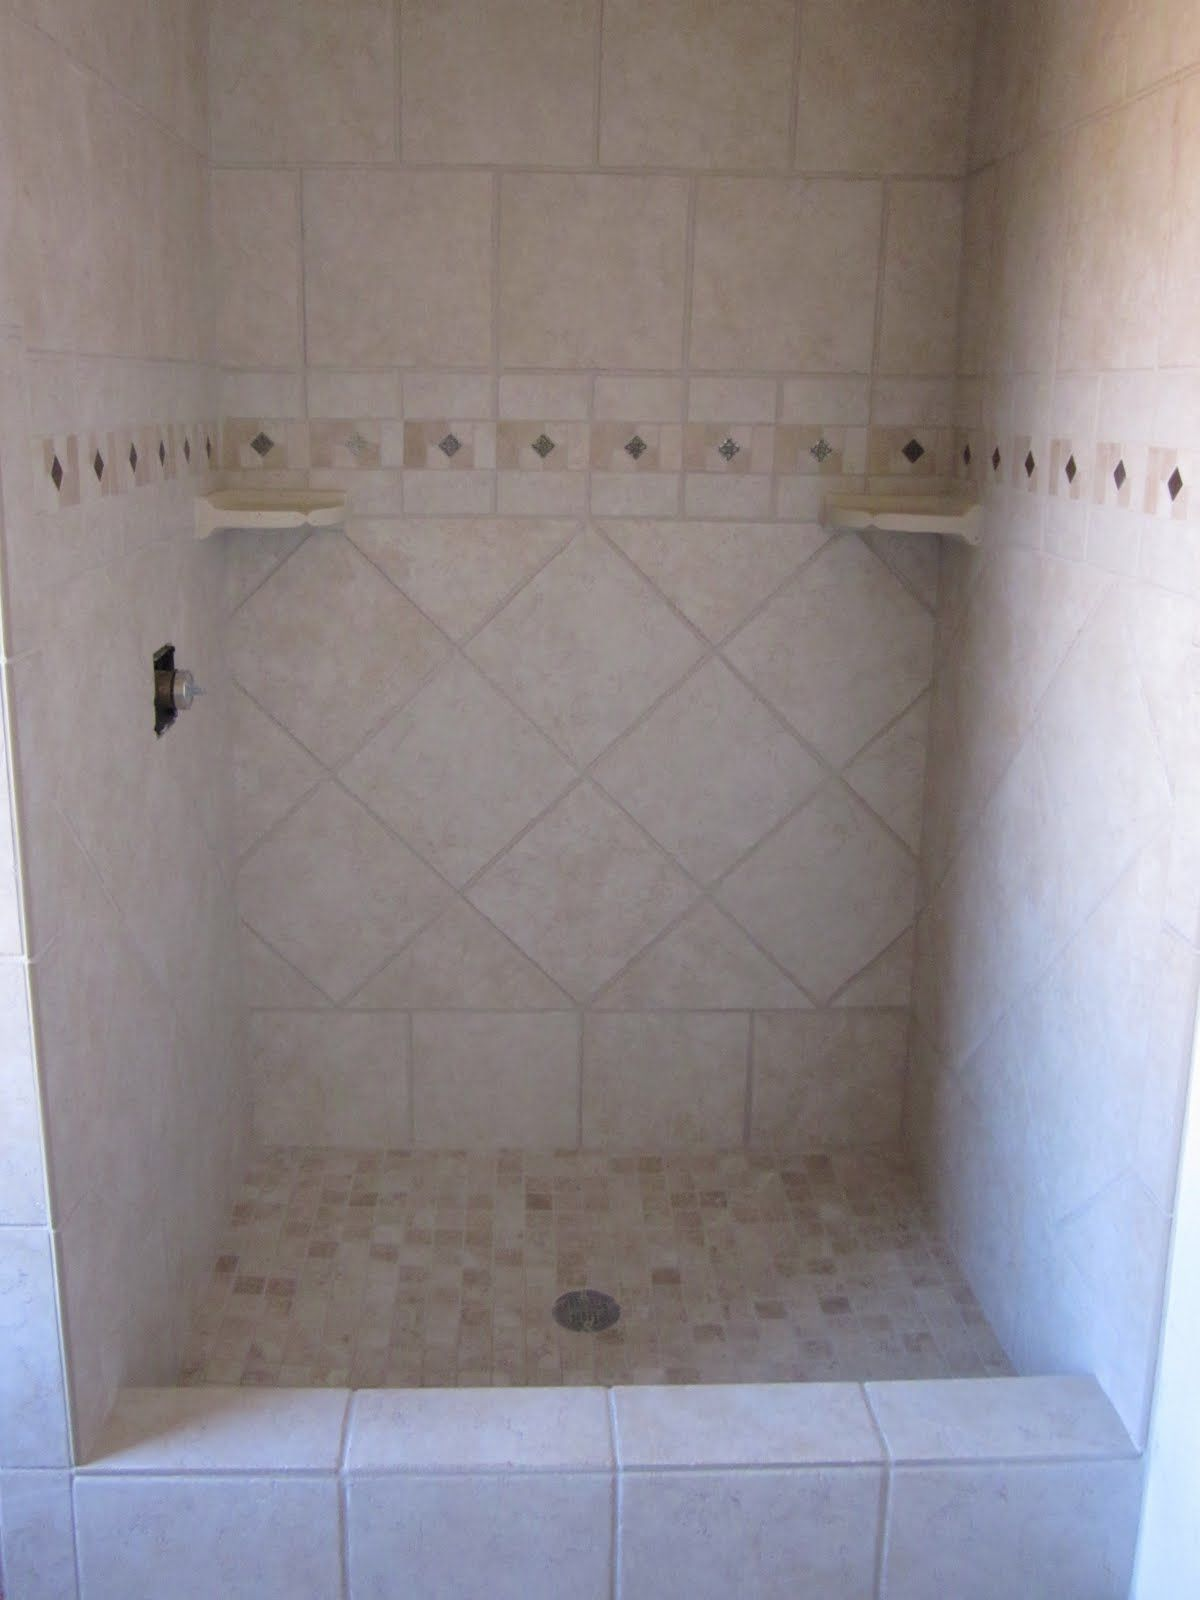 diamond tile pattern for shower | ... shower w/ diamond on bottom ...